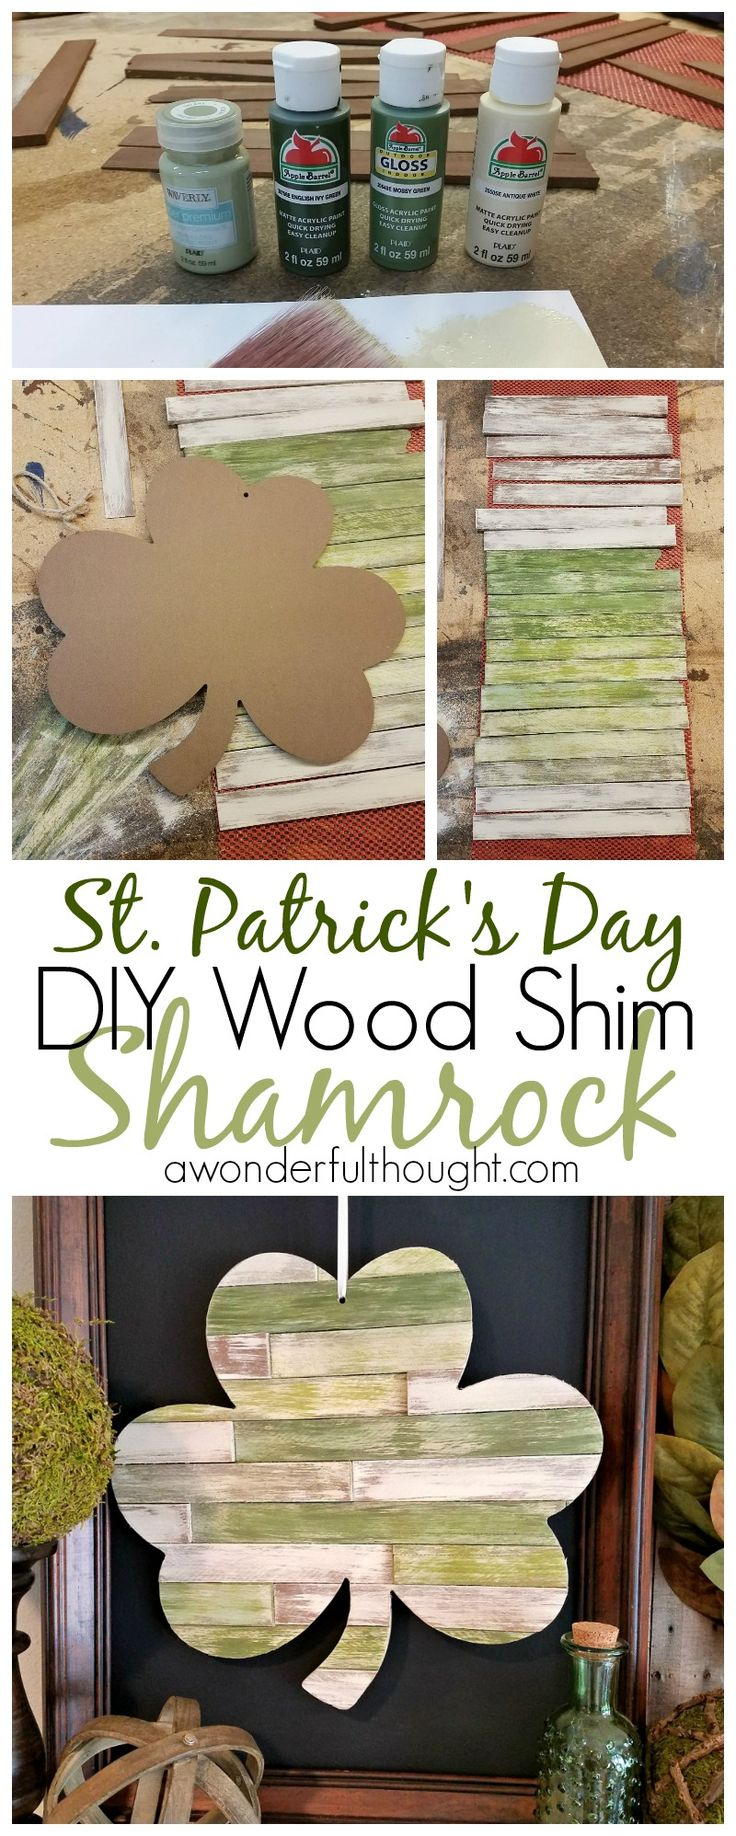 Here is a great tutorial to make a DIY Wood Shim Shamrock. This is perfect for St. Patrick's Day decoration. | awonderfulthought.com